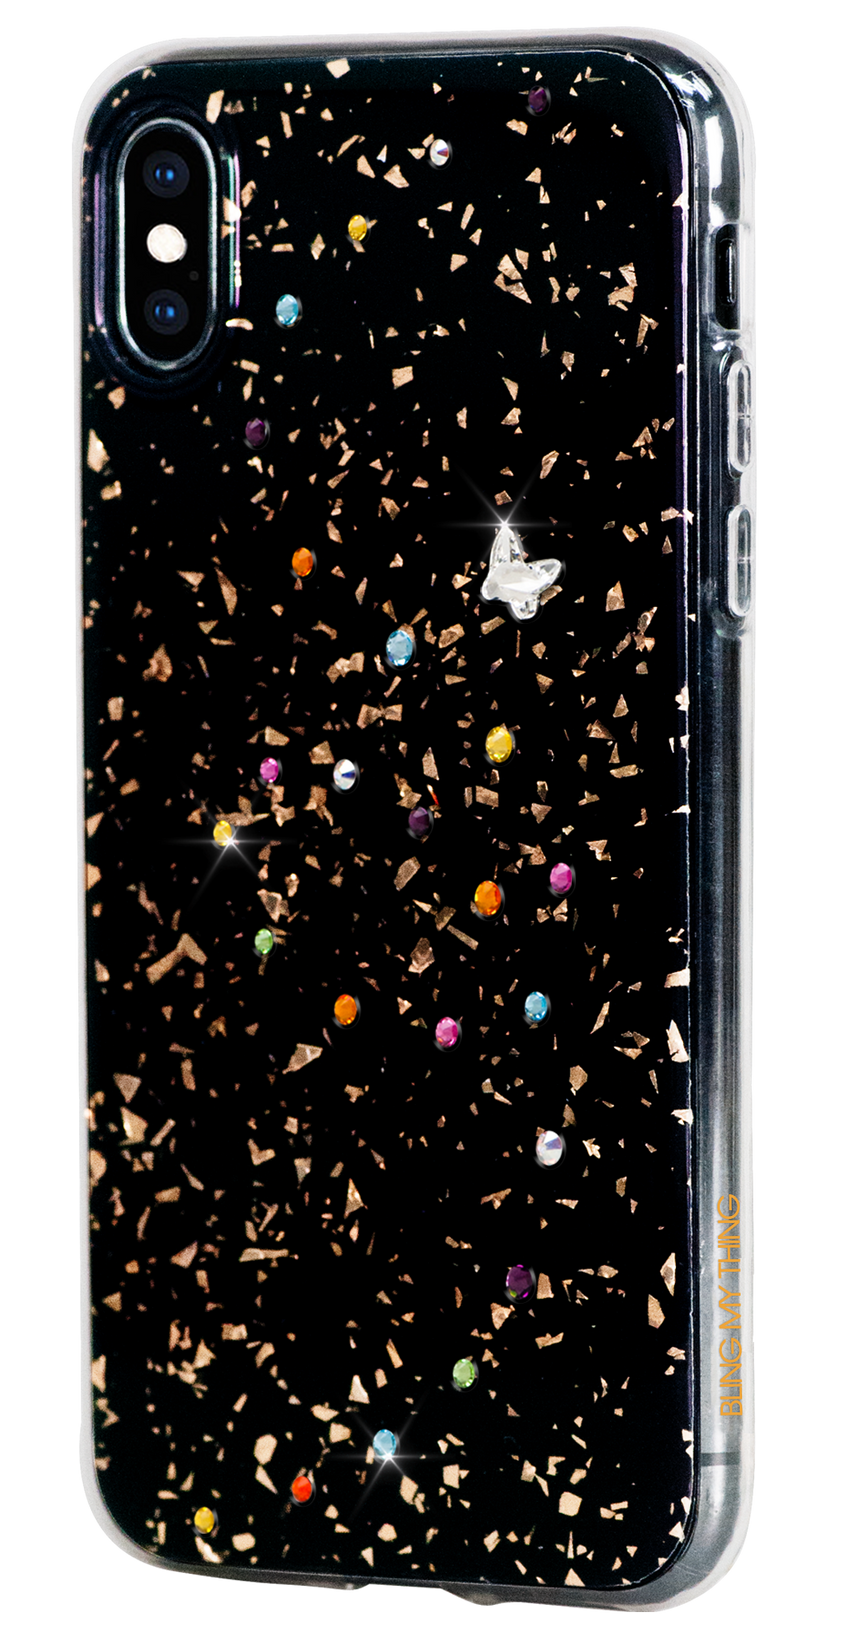 PAPILLON ᛫ BLACK GALAXY ᛫ double-layered TPU cover with Swarovski Crystals - for iPhone XS Max